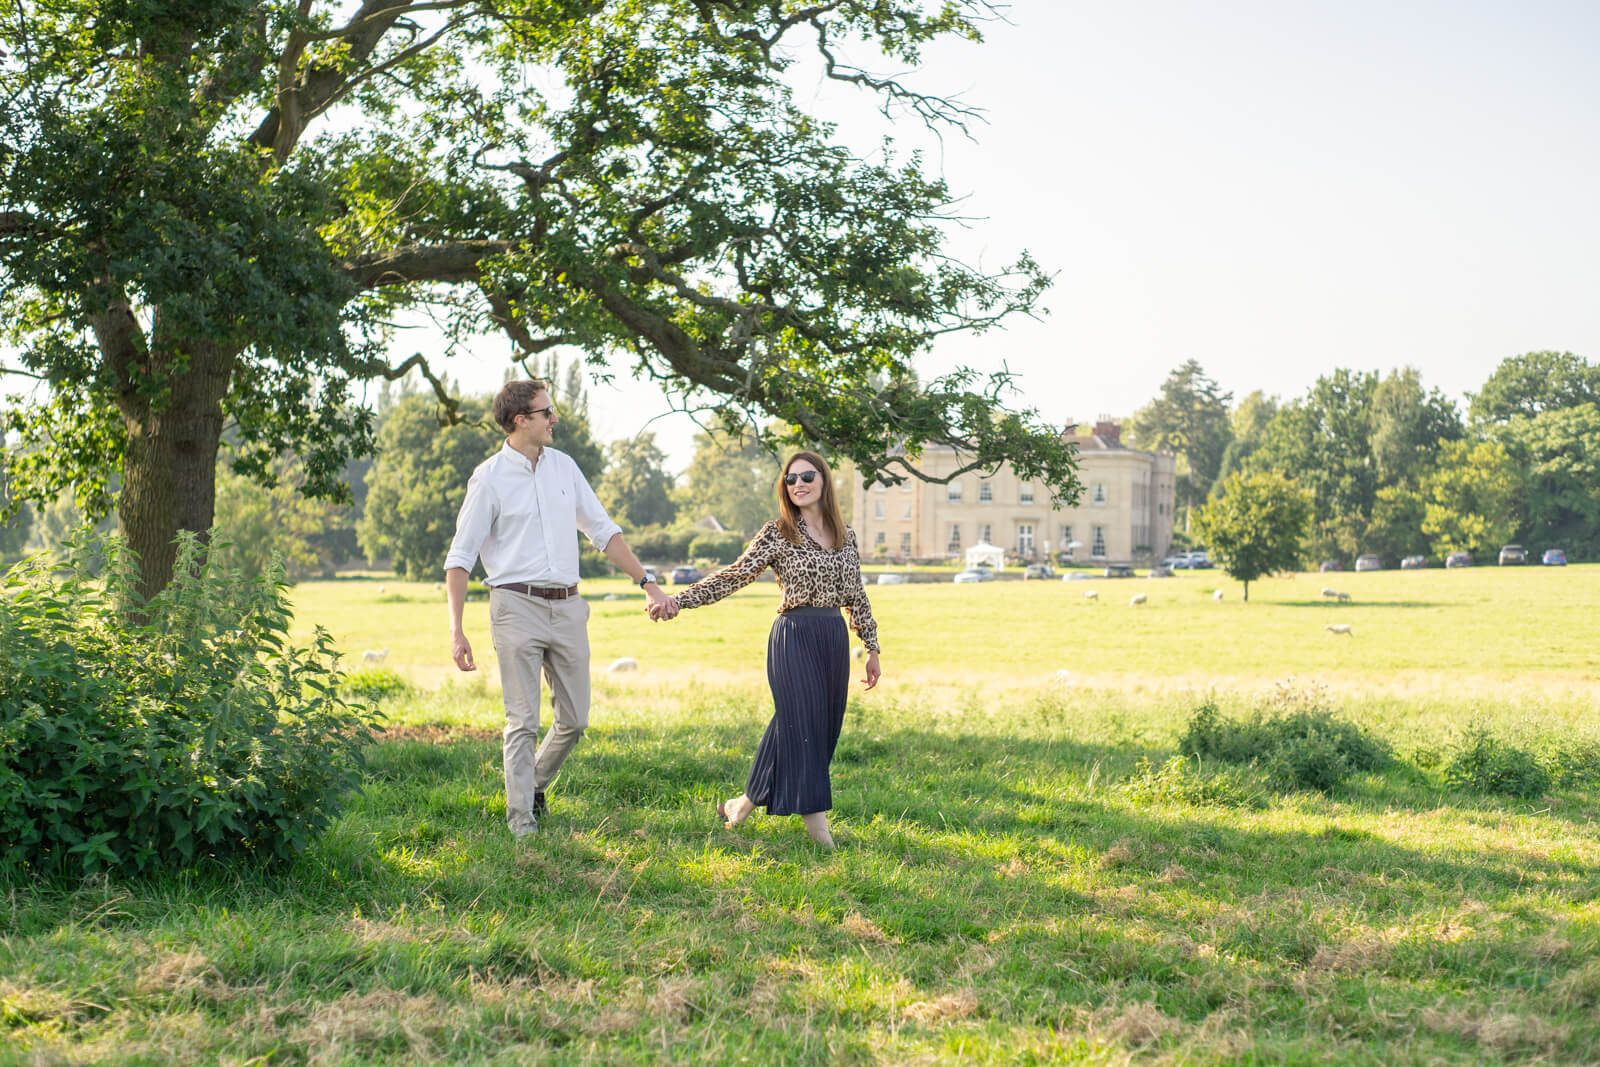 Couple hold hands and walk under a tree on a sunny day